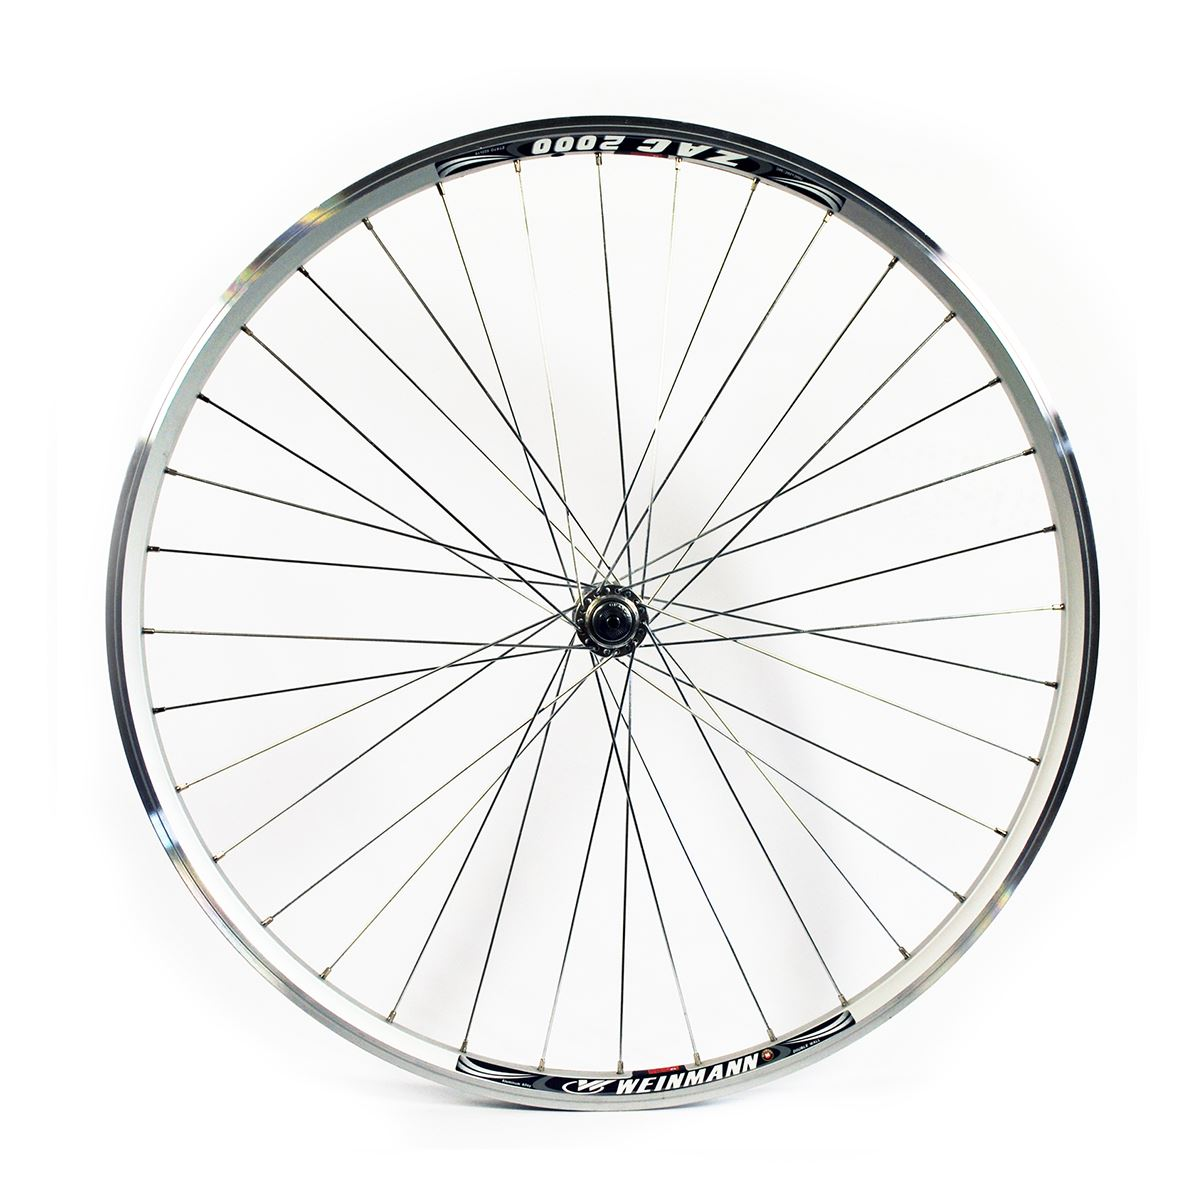 Wilkinson Rear Wheel 36 Hole Double Wall Weinmann Xr18